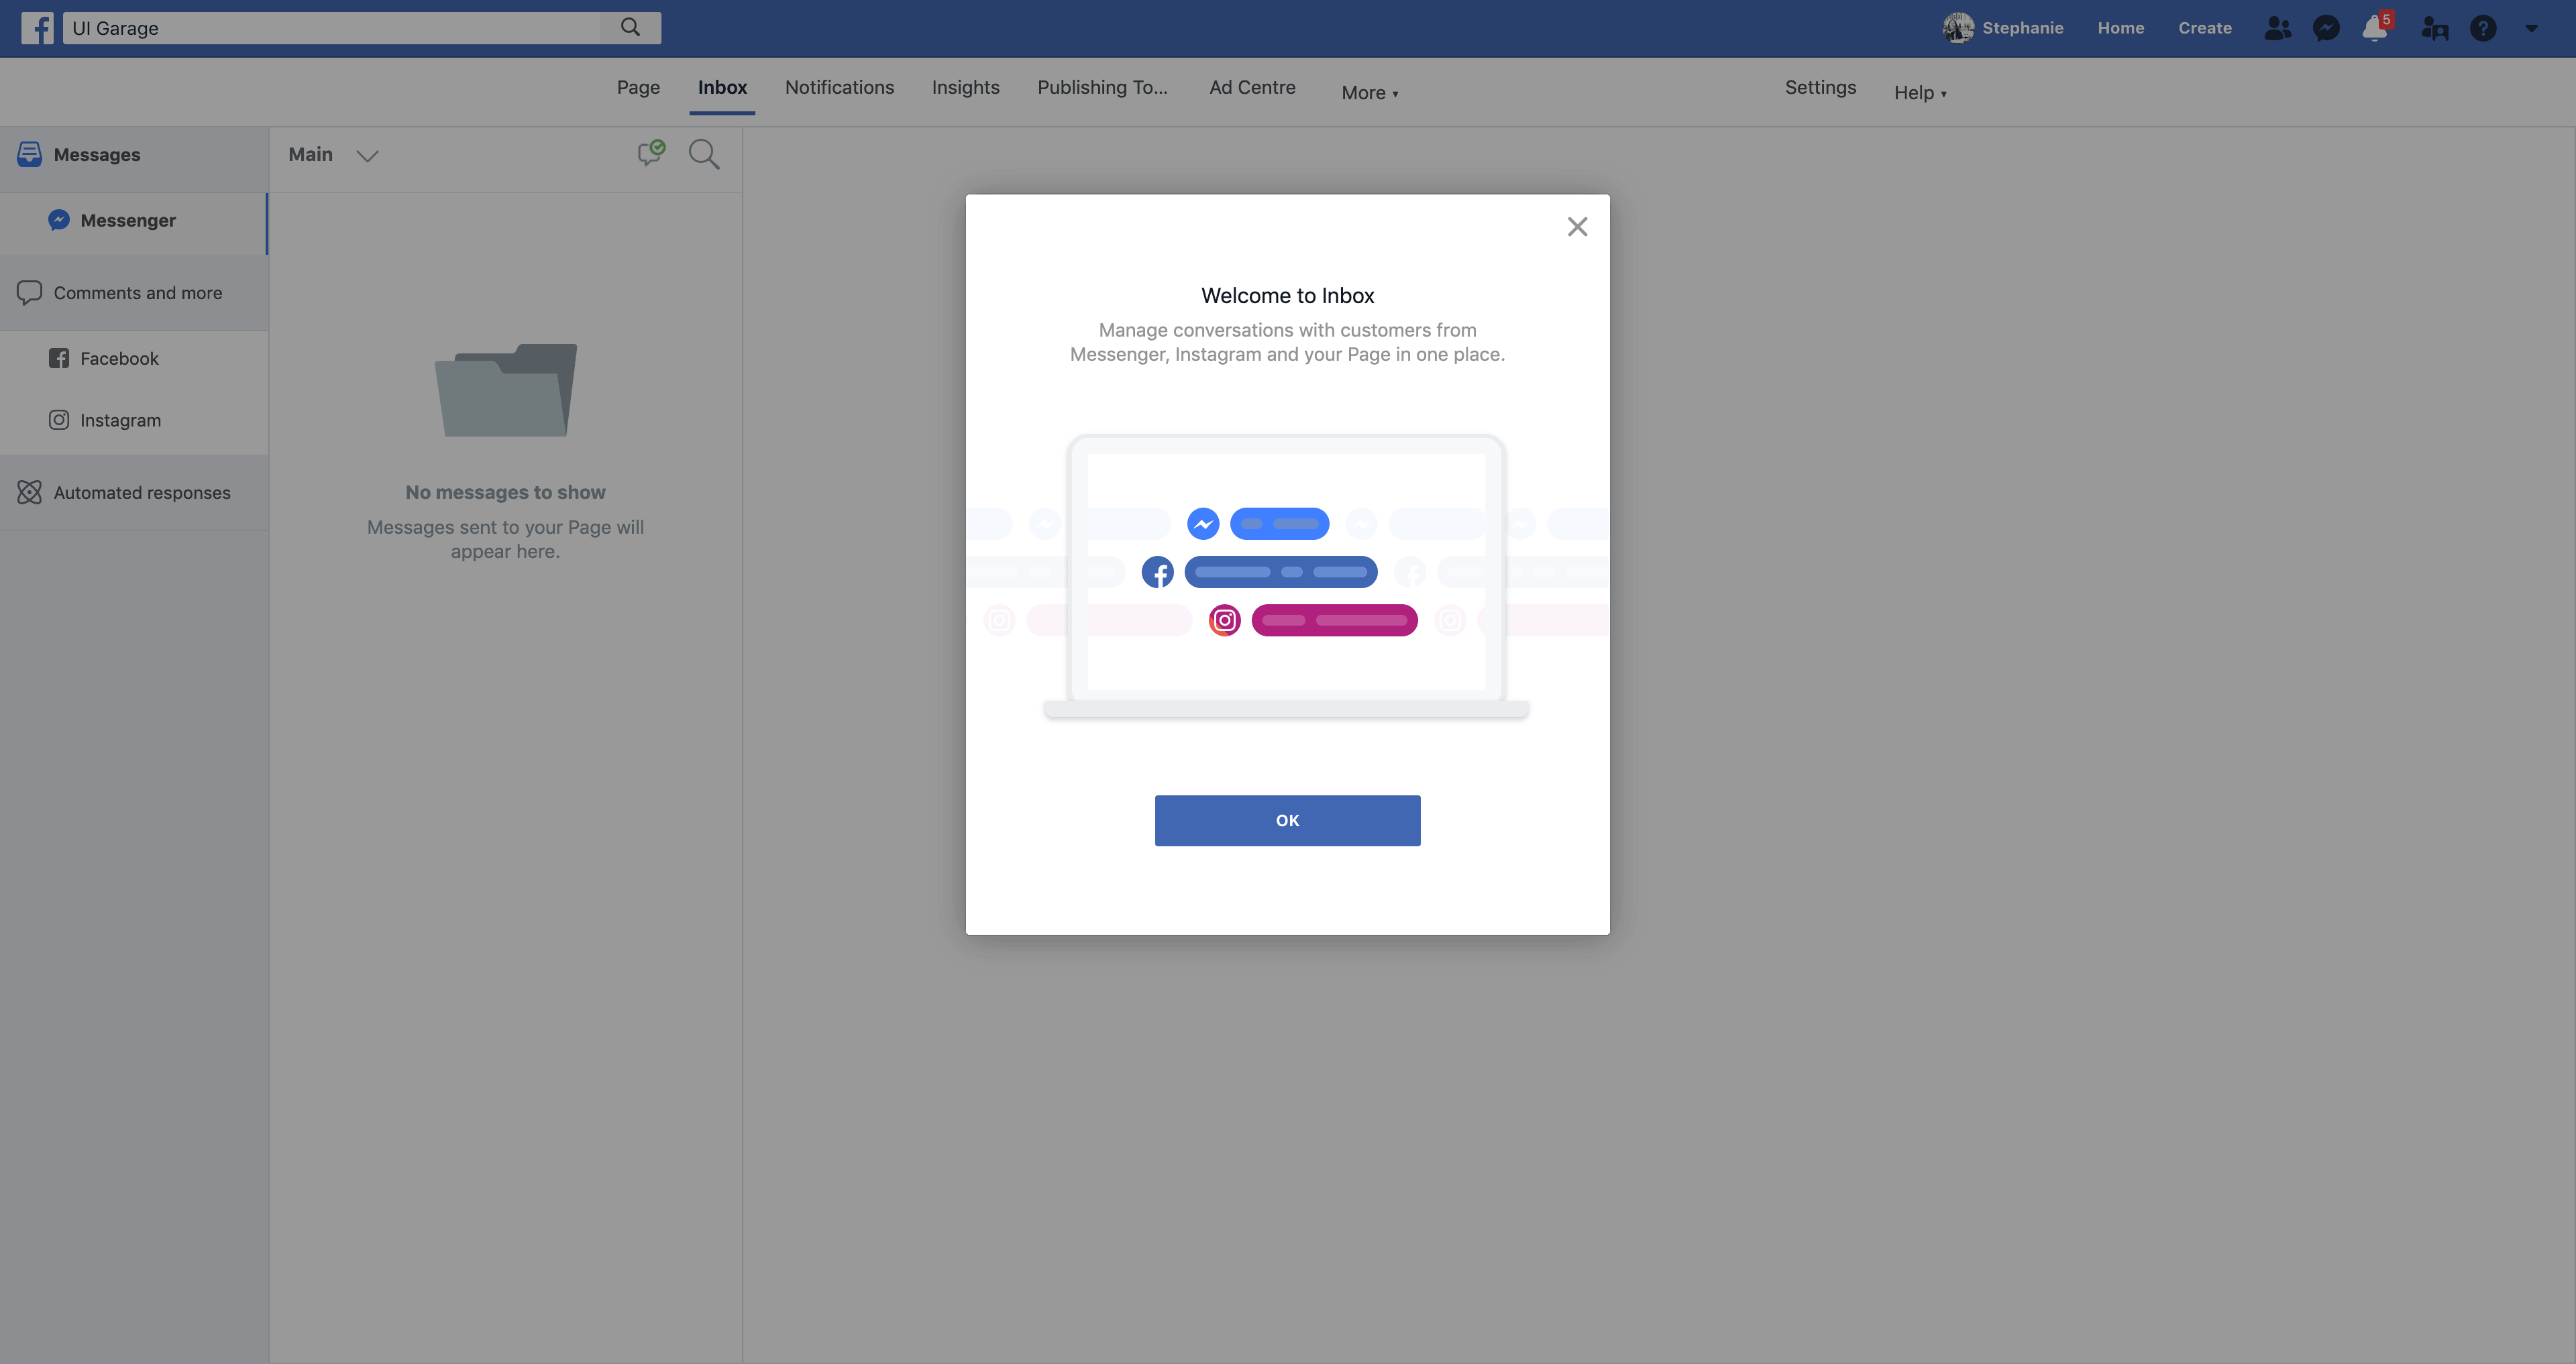 Welcome to Page Inbox by Facebook from UIGarage